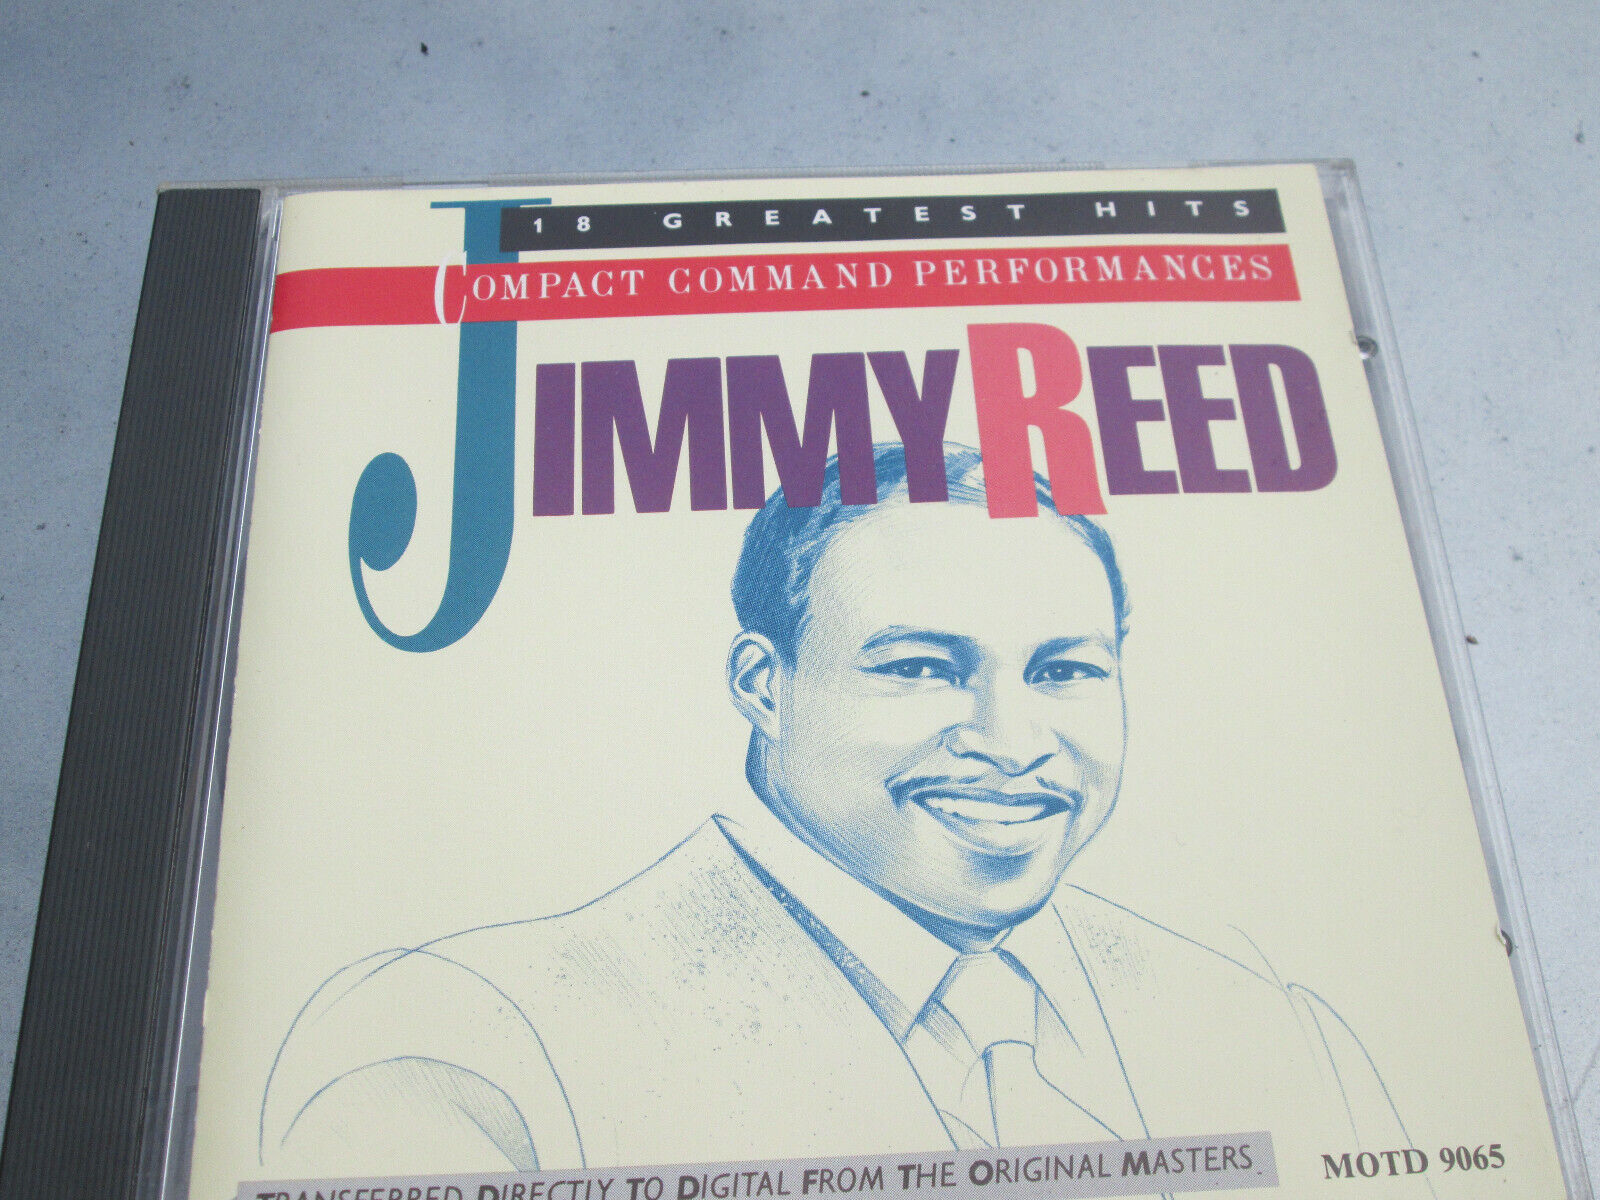 JIMMY REED COMPACT COMMAND PERFORMANCES BLUES CD - NICE CONDITION - $11.99